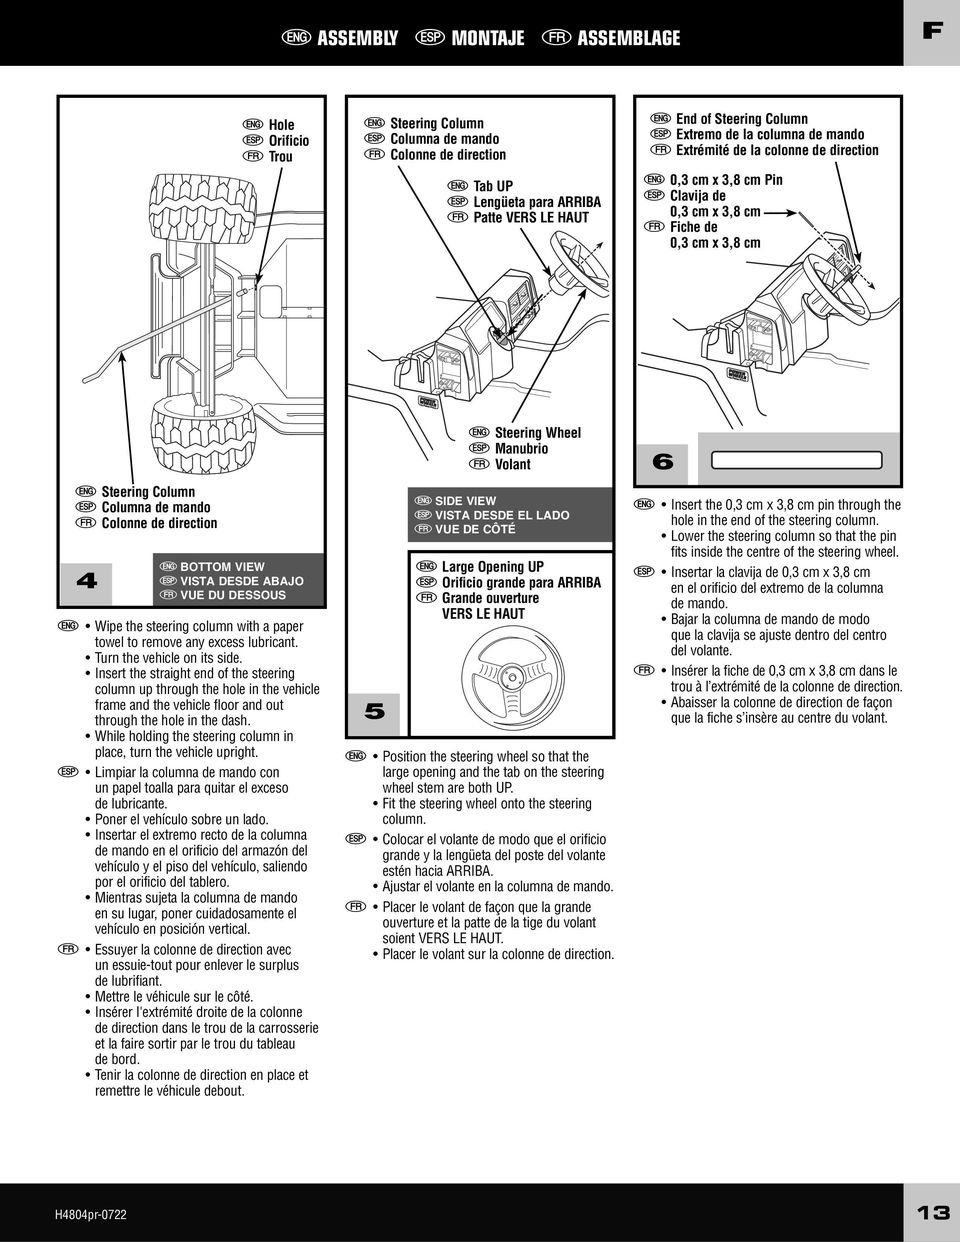 direction 4 e BOTTOM VIEW S VISTA DESDE ABAJO f VUE DU DESSOUS e Wipe the steering column with a paper towel to remove any excess lubricant. Turn the vehicle on its side.